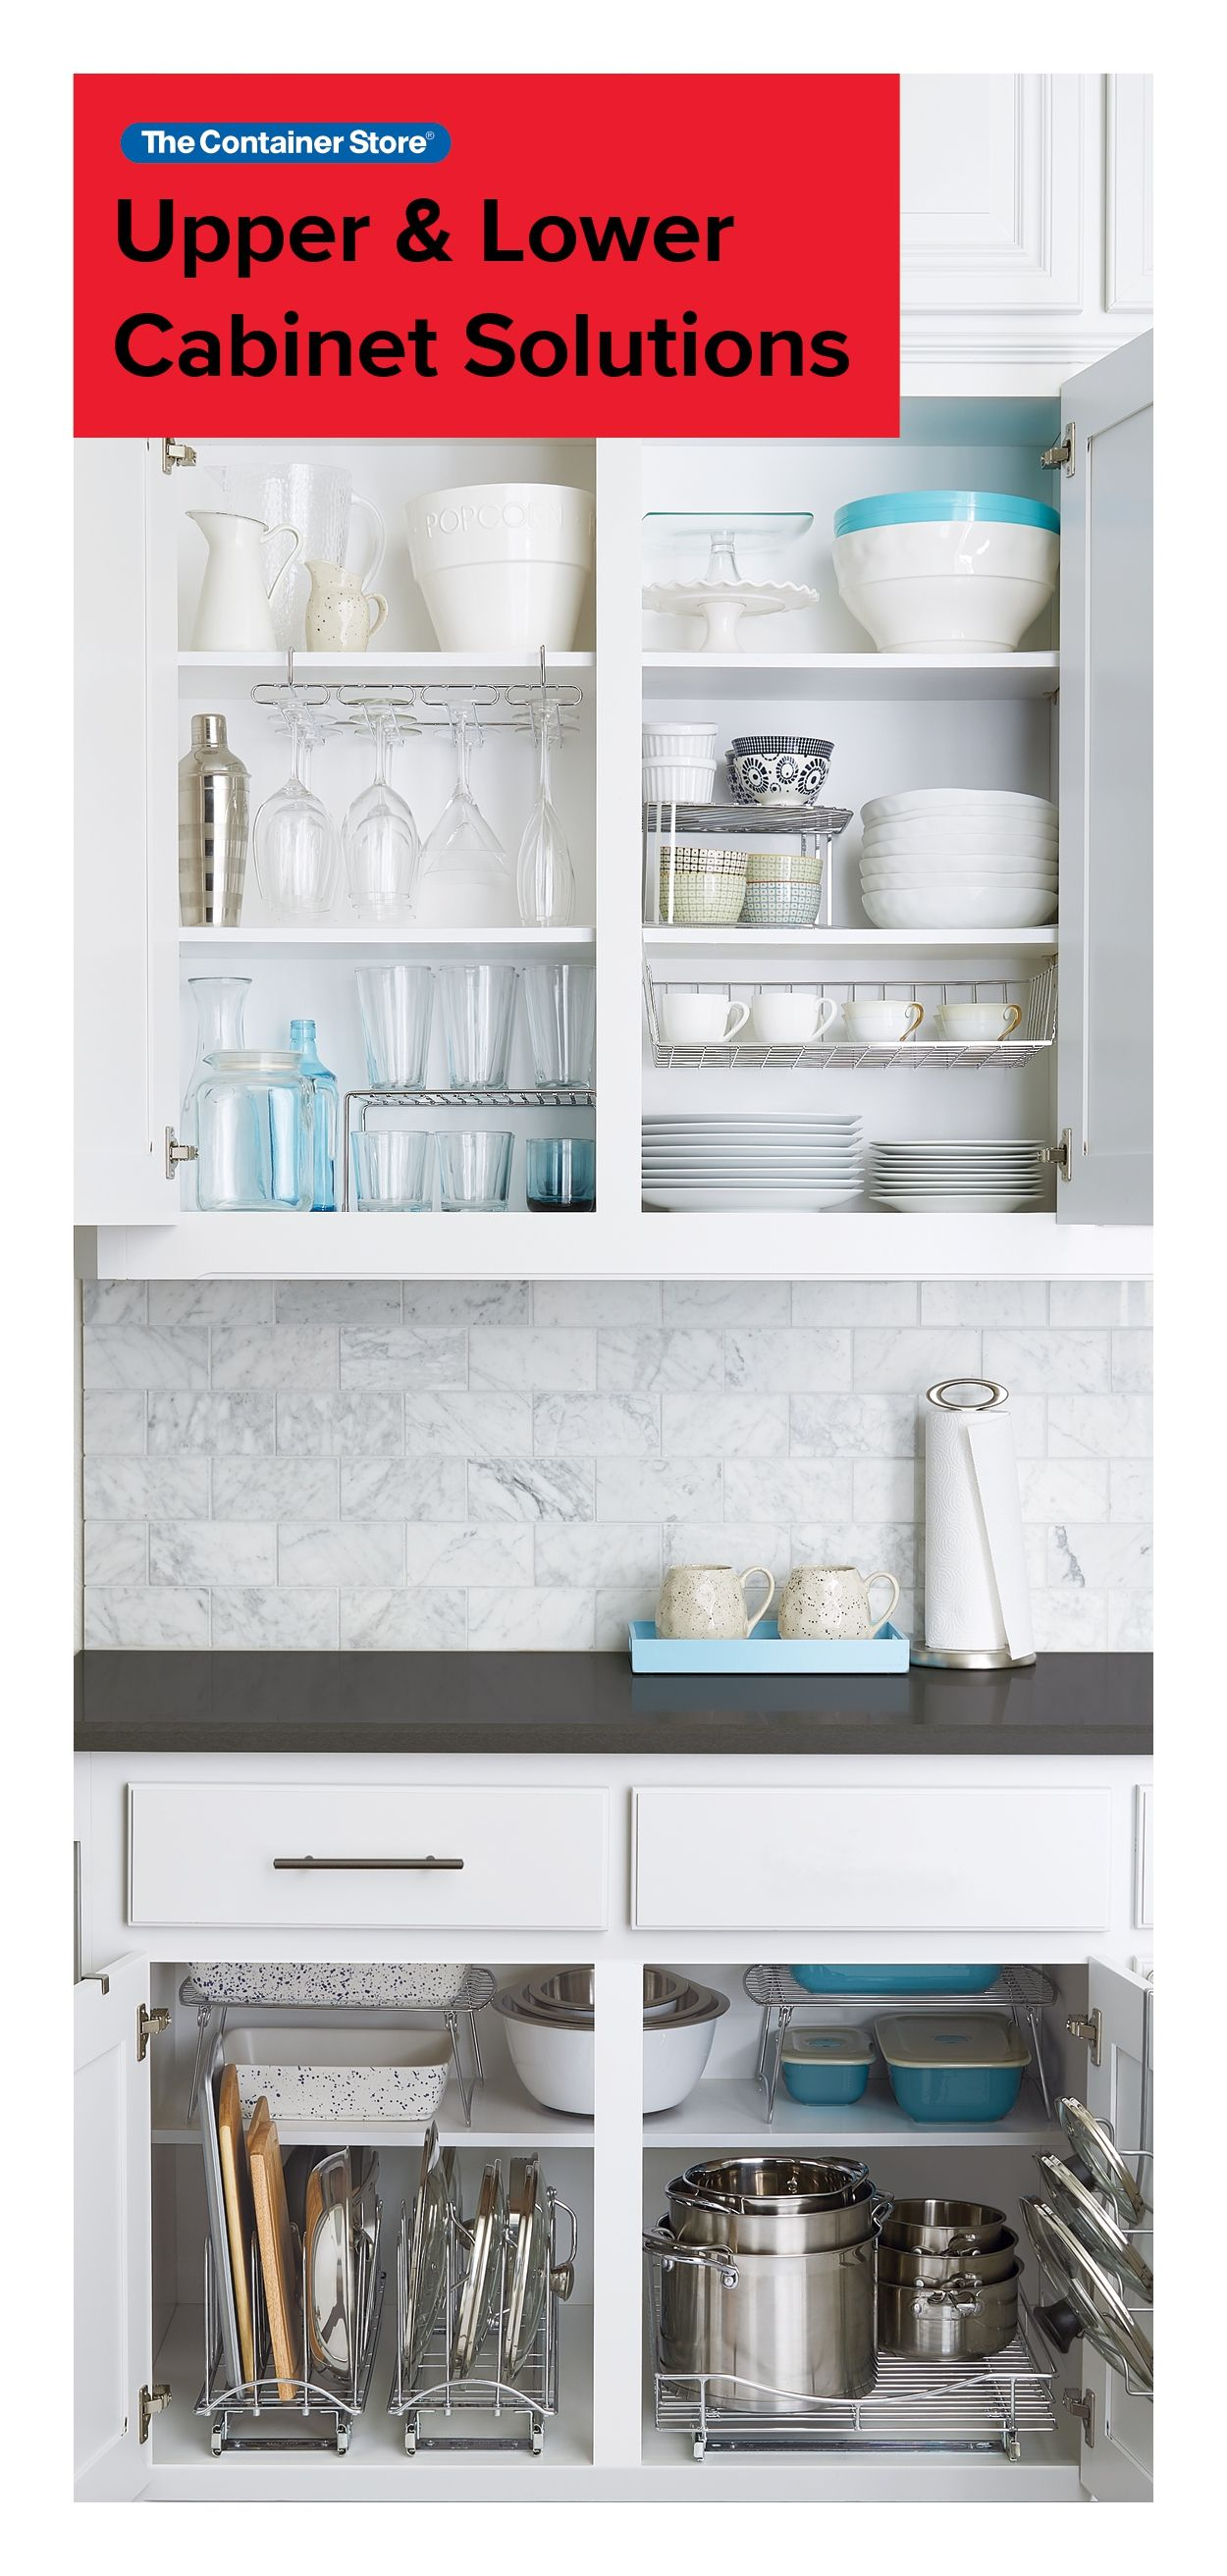 Kitchen Cabinet Organization Made Easy From Pots And Pans To Plates And Cups We Got Y Kitchen Cabinet Storage Cabinets Organization Luxury Kitchen Cabinets